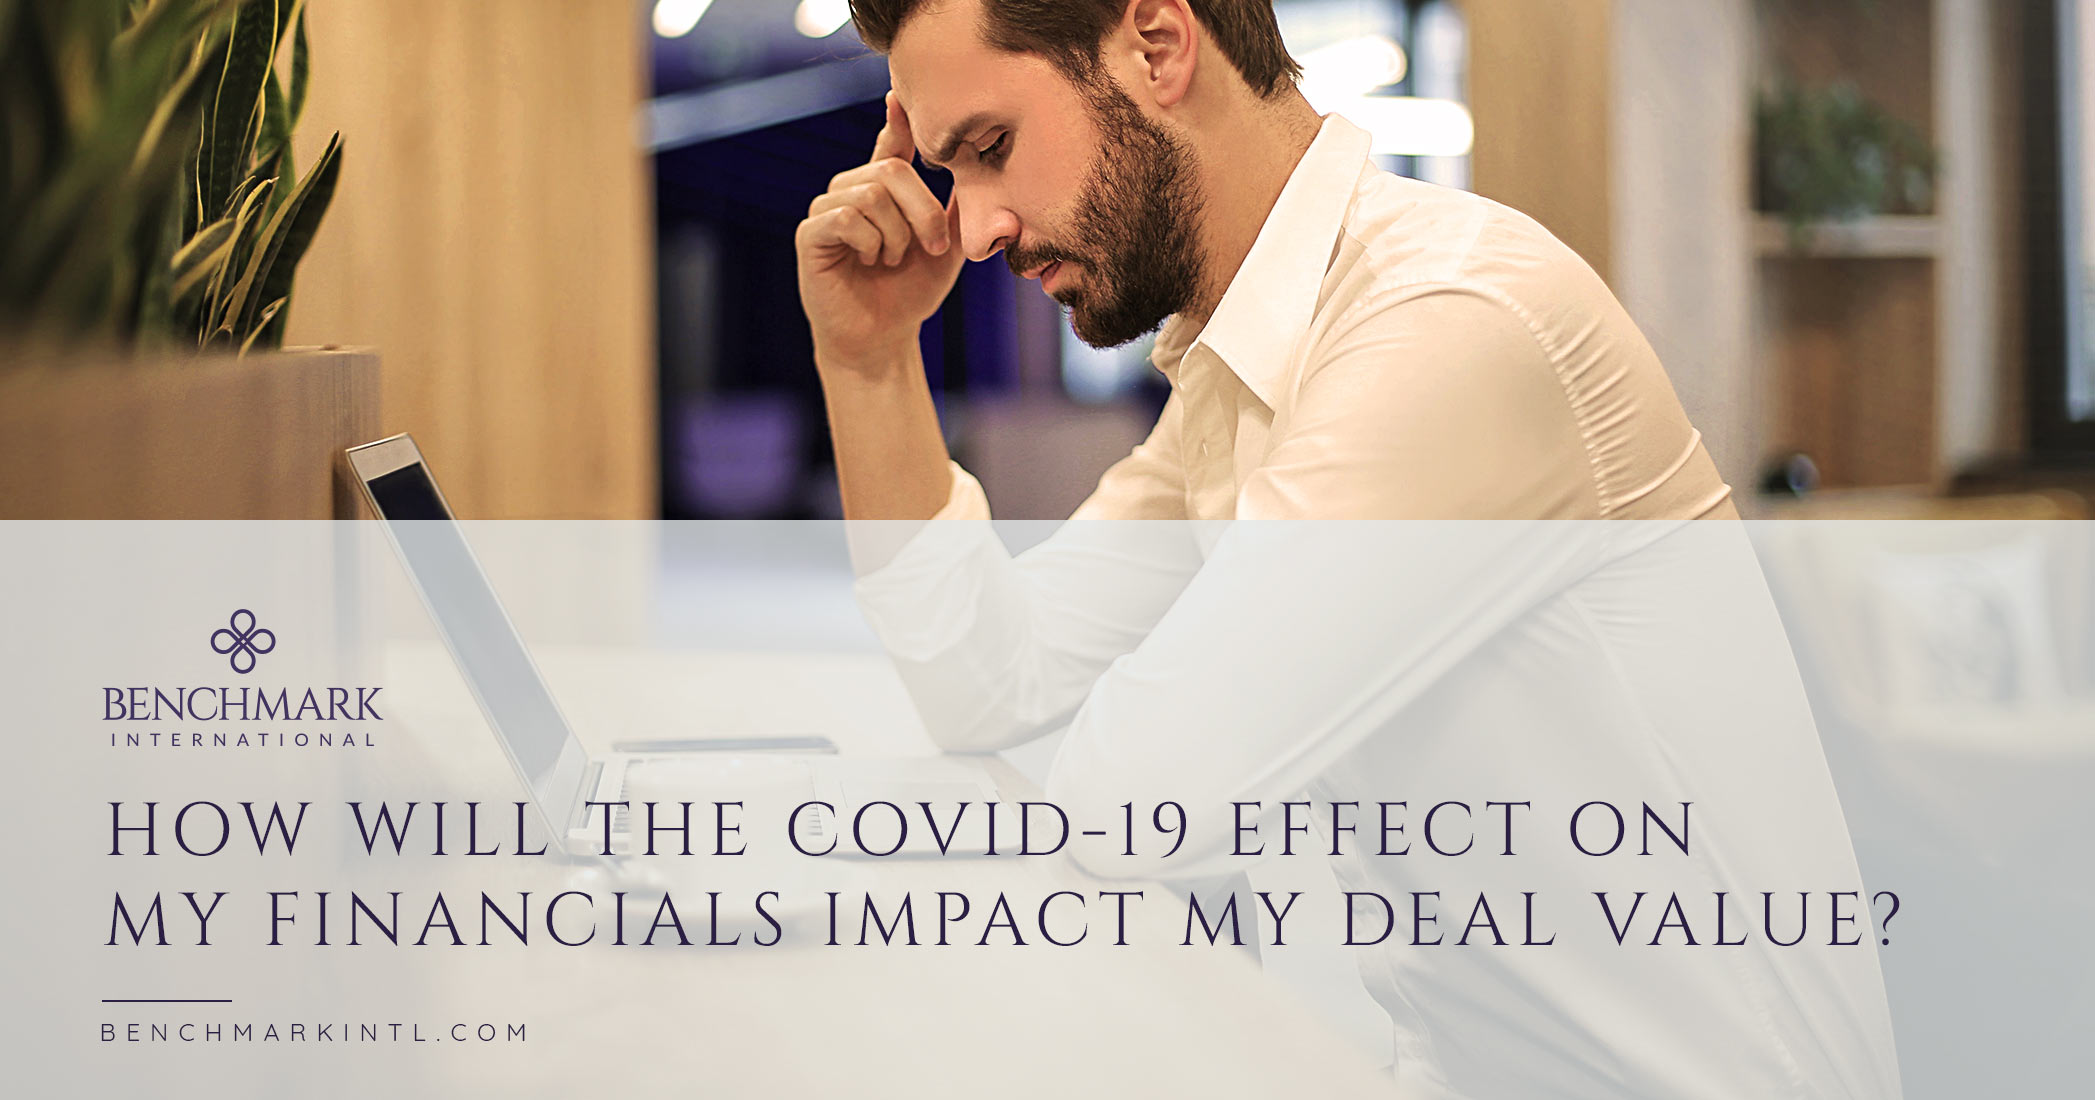 How Will The COVID-19 Effect On My Financials Impact My Deal Value?